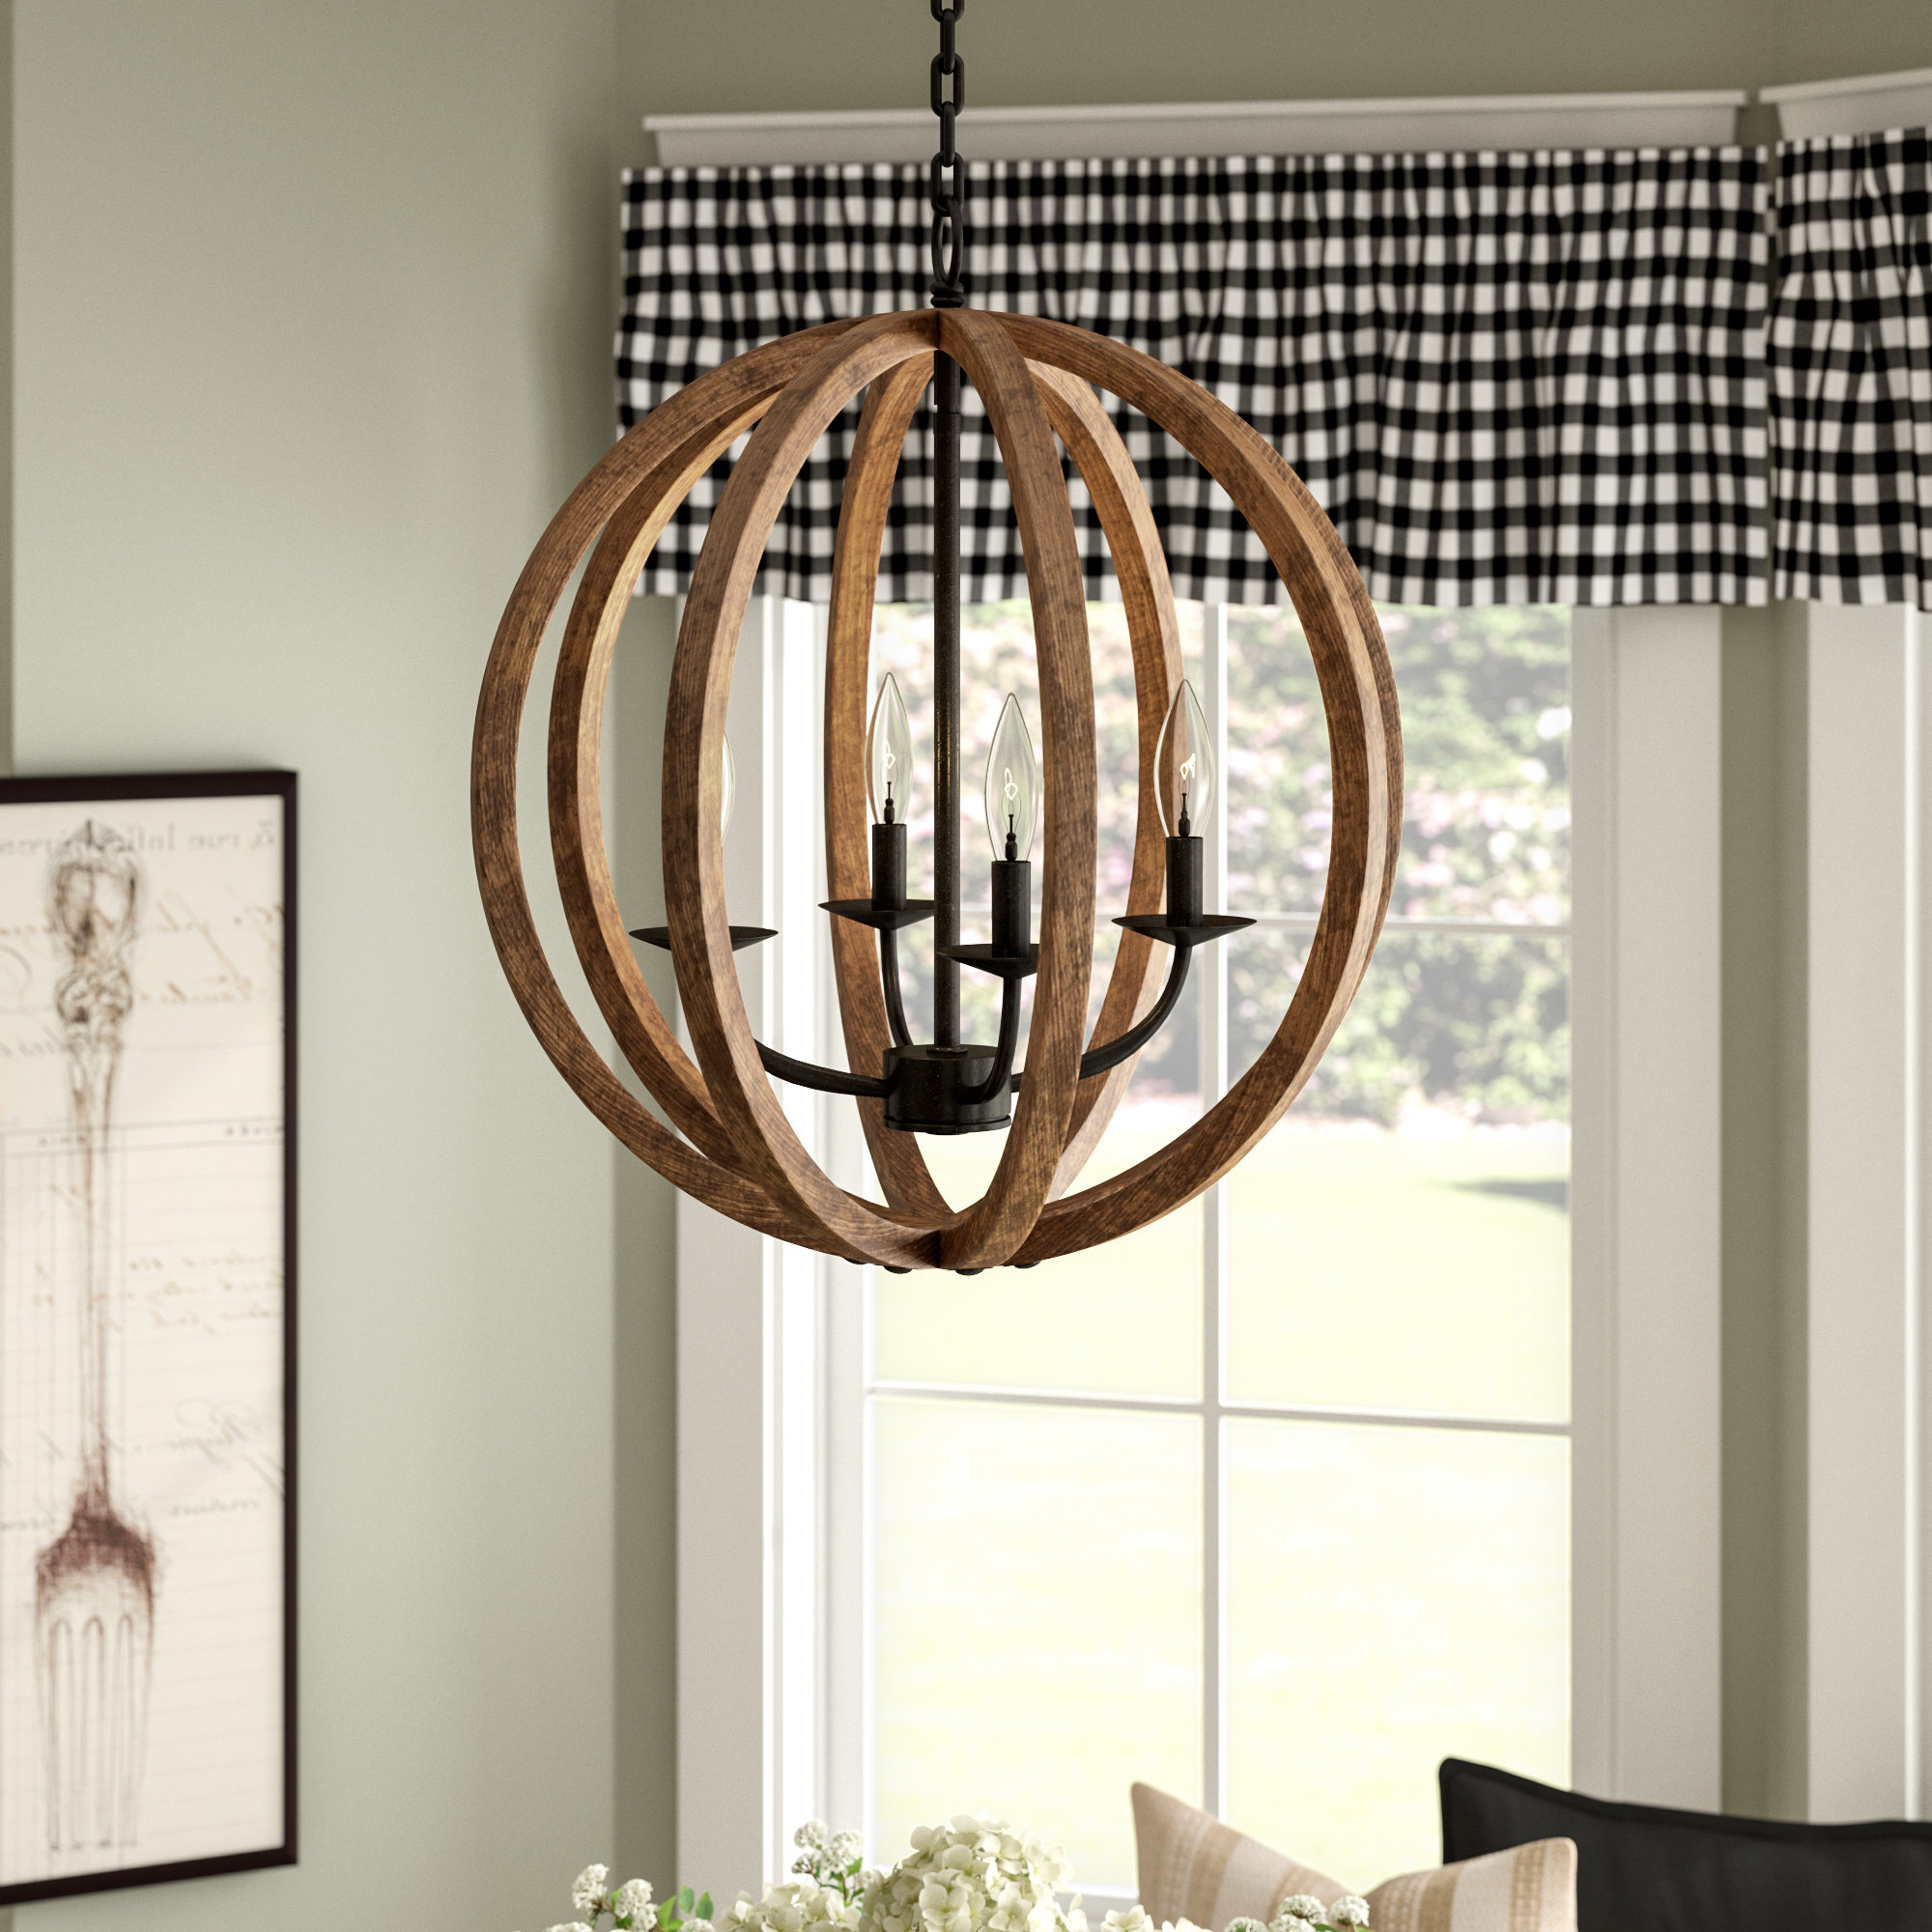 Ricciardo 4 Light Globe Chandeliers Within Most Popular Birch Lane Ricciardo 4 Light Globe Chandelier & Reviews (View 2 of 25)